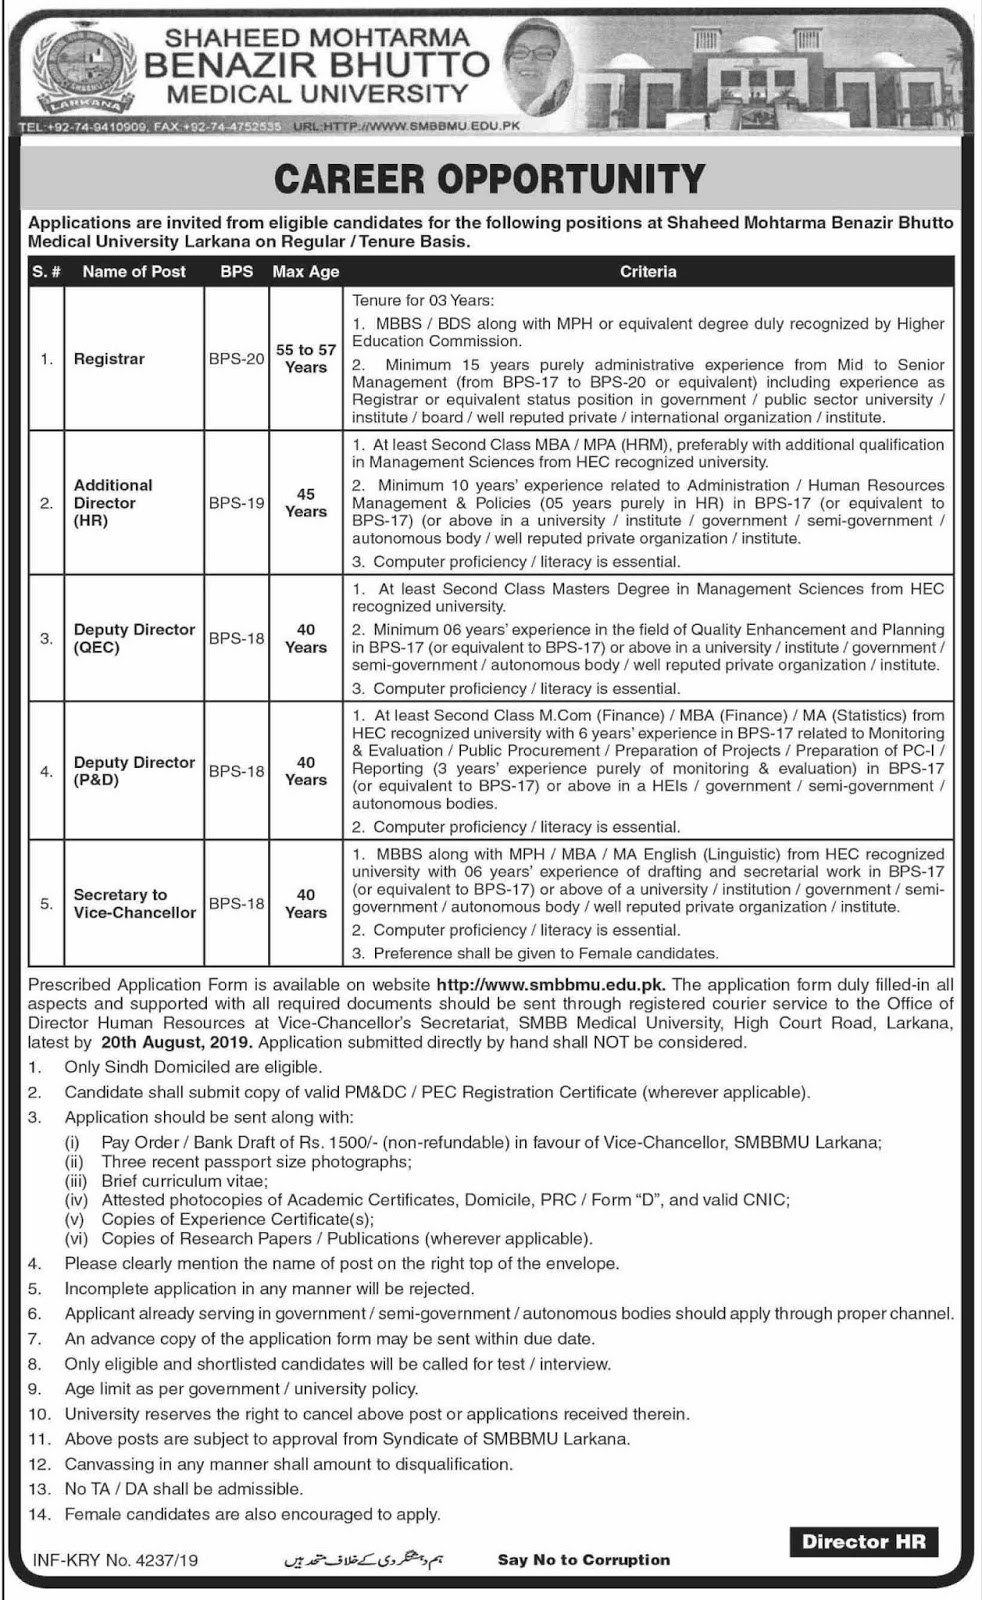 Advertisement for Shaheed Mohtarma Benazir Bhutto Medical University Jobs